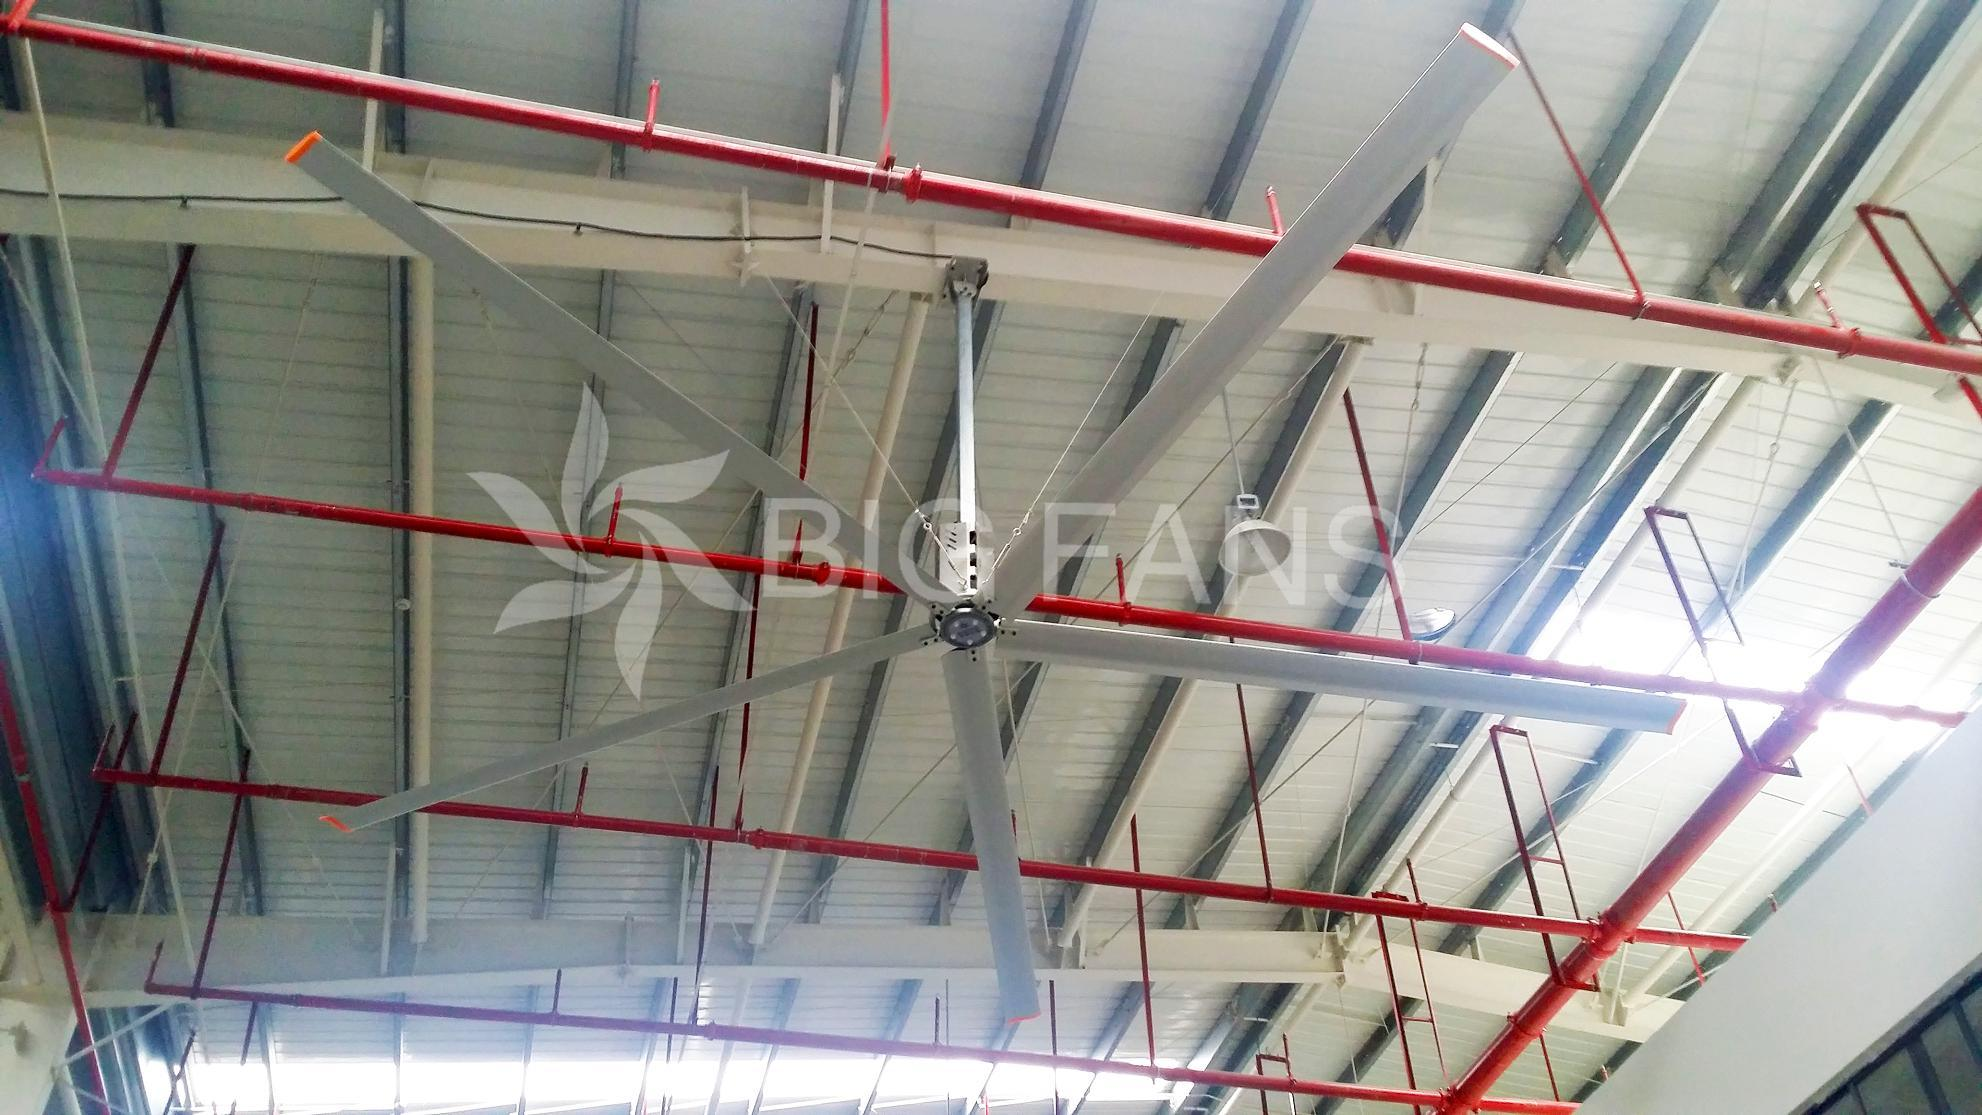 Bigfans Diameter Big Industrial Ceiling Fans for Ventilation1.5kw 6.2m/20.4FT